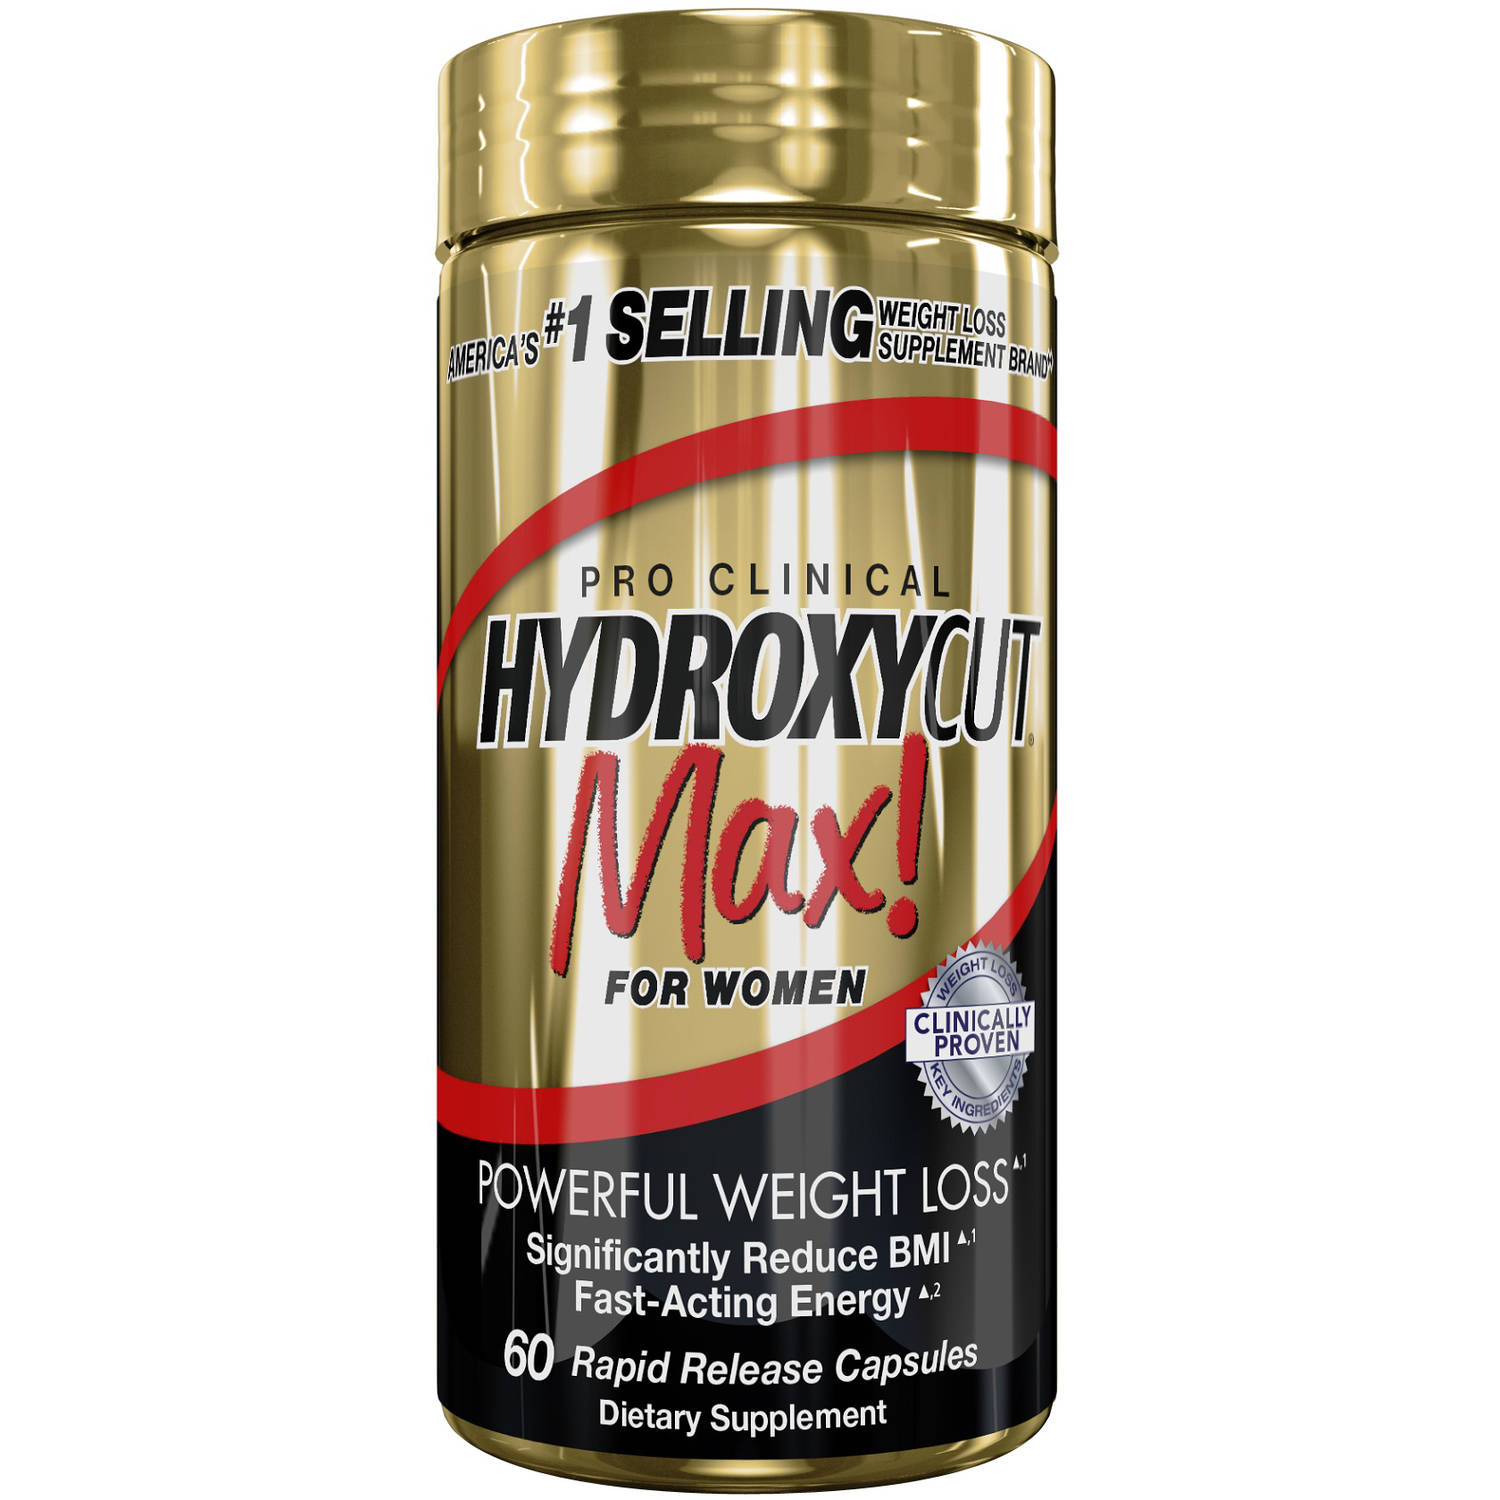 Pro Clinical Hydroxycut Max! For Women Weight Loss Supplement Rapid Release Capsules,...